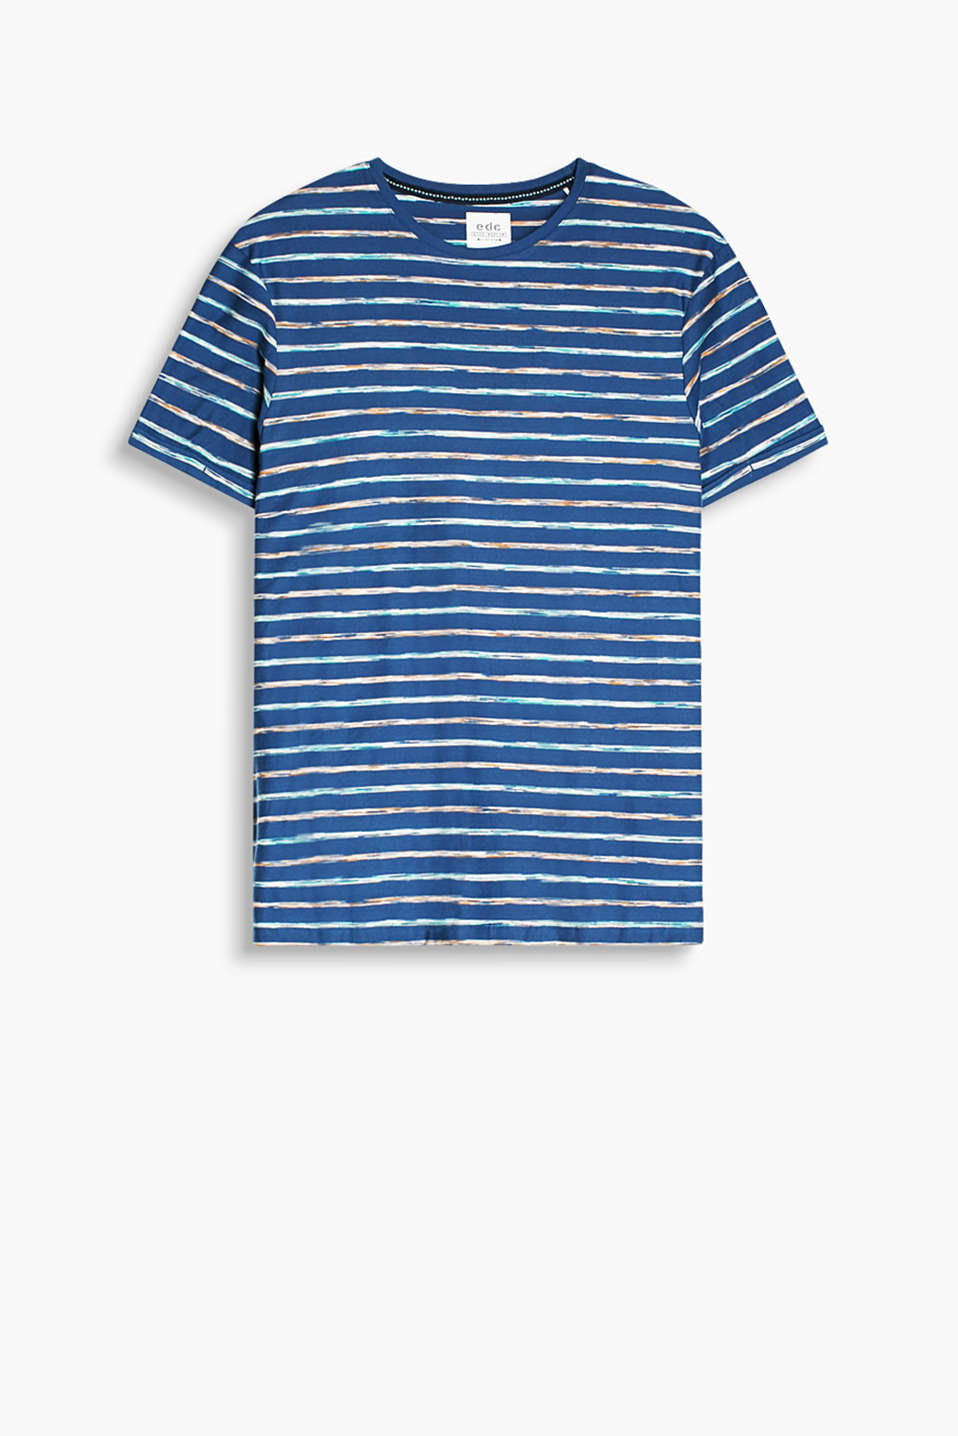 Summery striped T-shirt made of 100% cotton